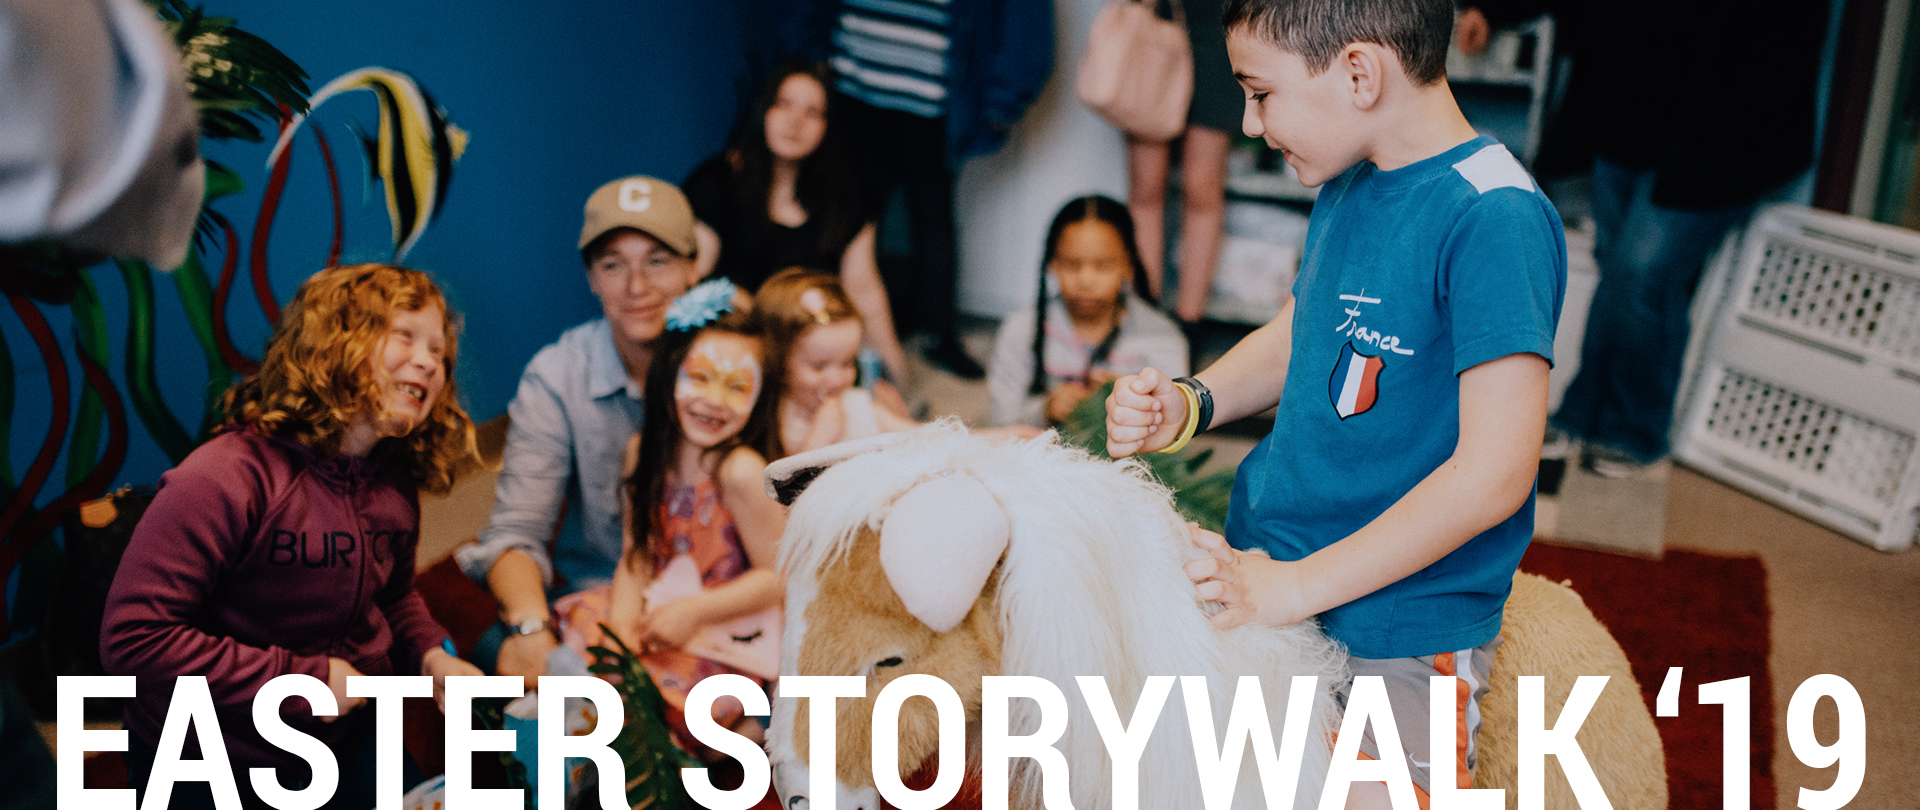 TCC Website Featured Content Banner EASTER STORYWALK 19.jpg